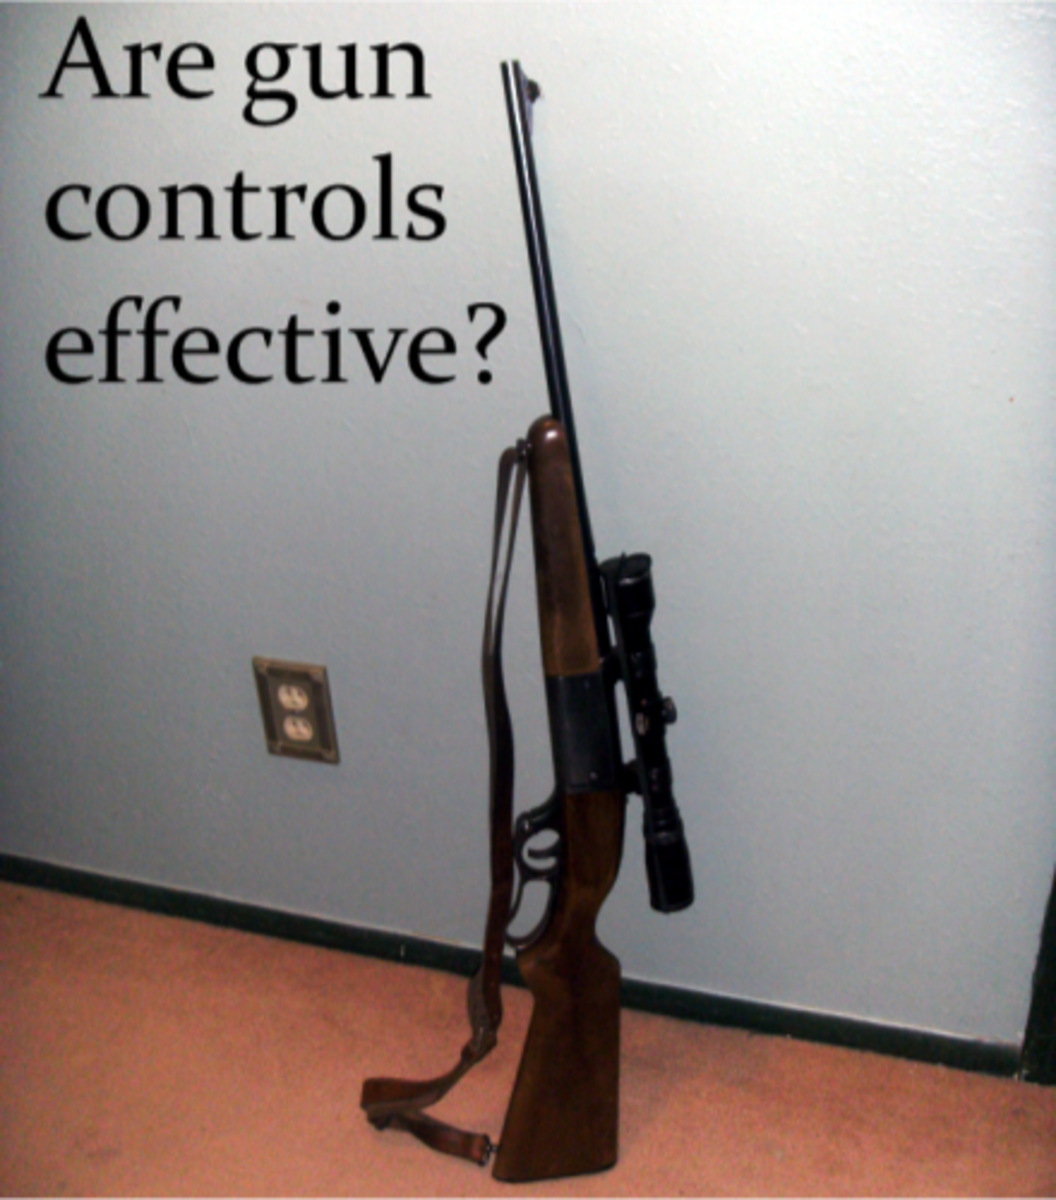 essays about gun control Thesis statement: gun control decreases crime if gun control is regulated, then we will have less crime access to firearms makes killing easy, efficient, and impersonal, which increases the lethality of crime.